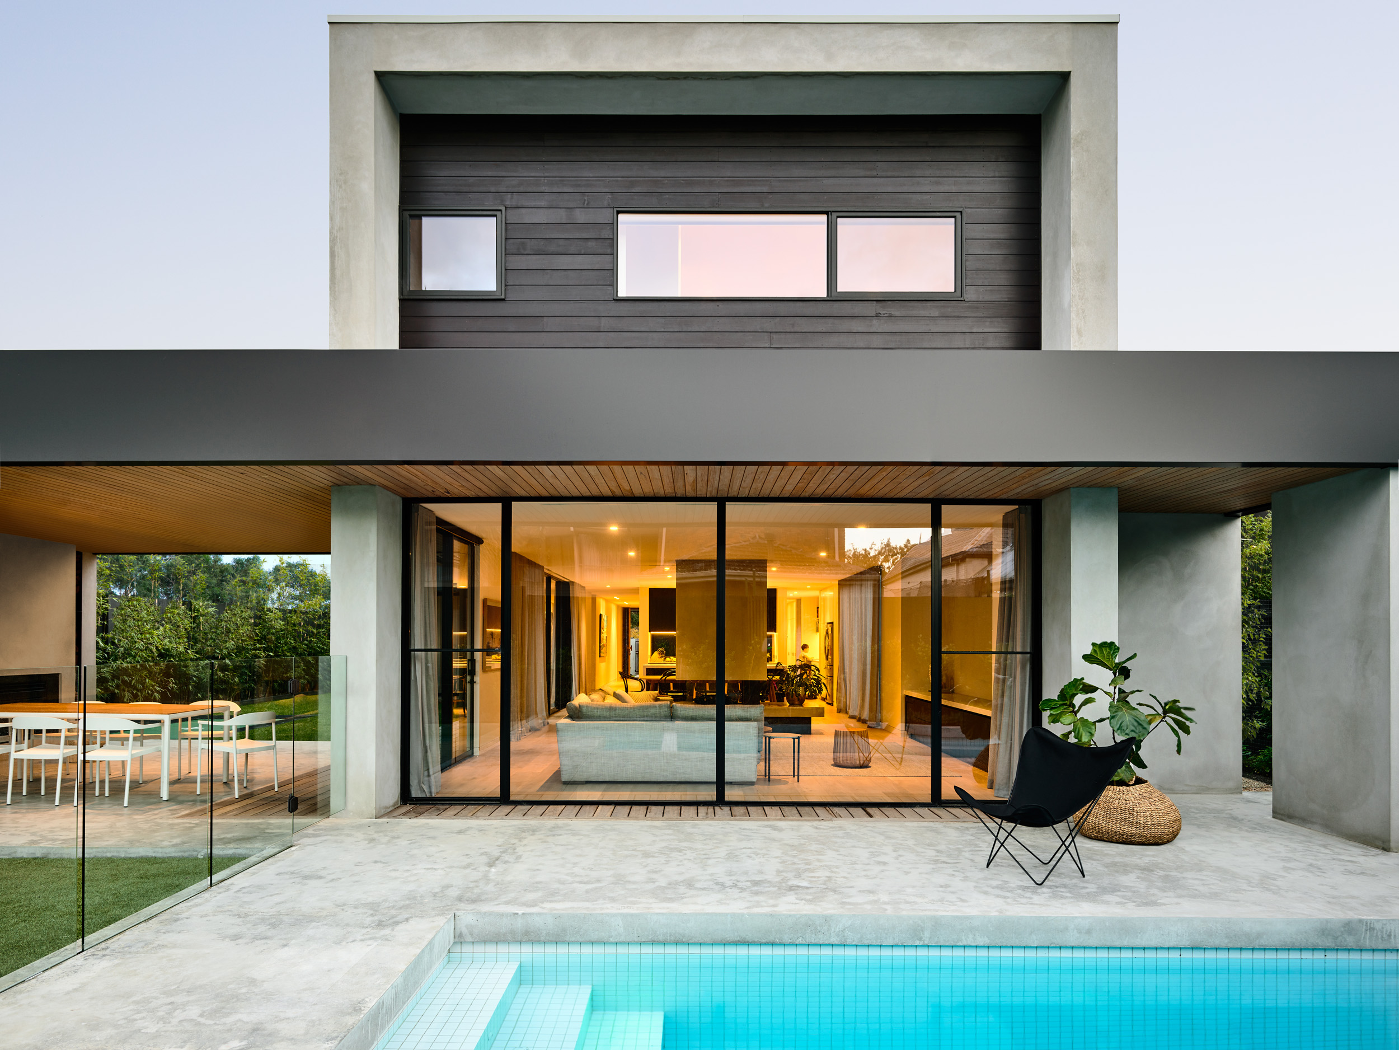 Residential home design jobs interior designers melbourne for Home architecture career